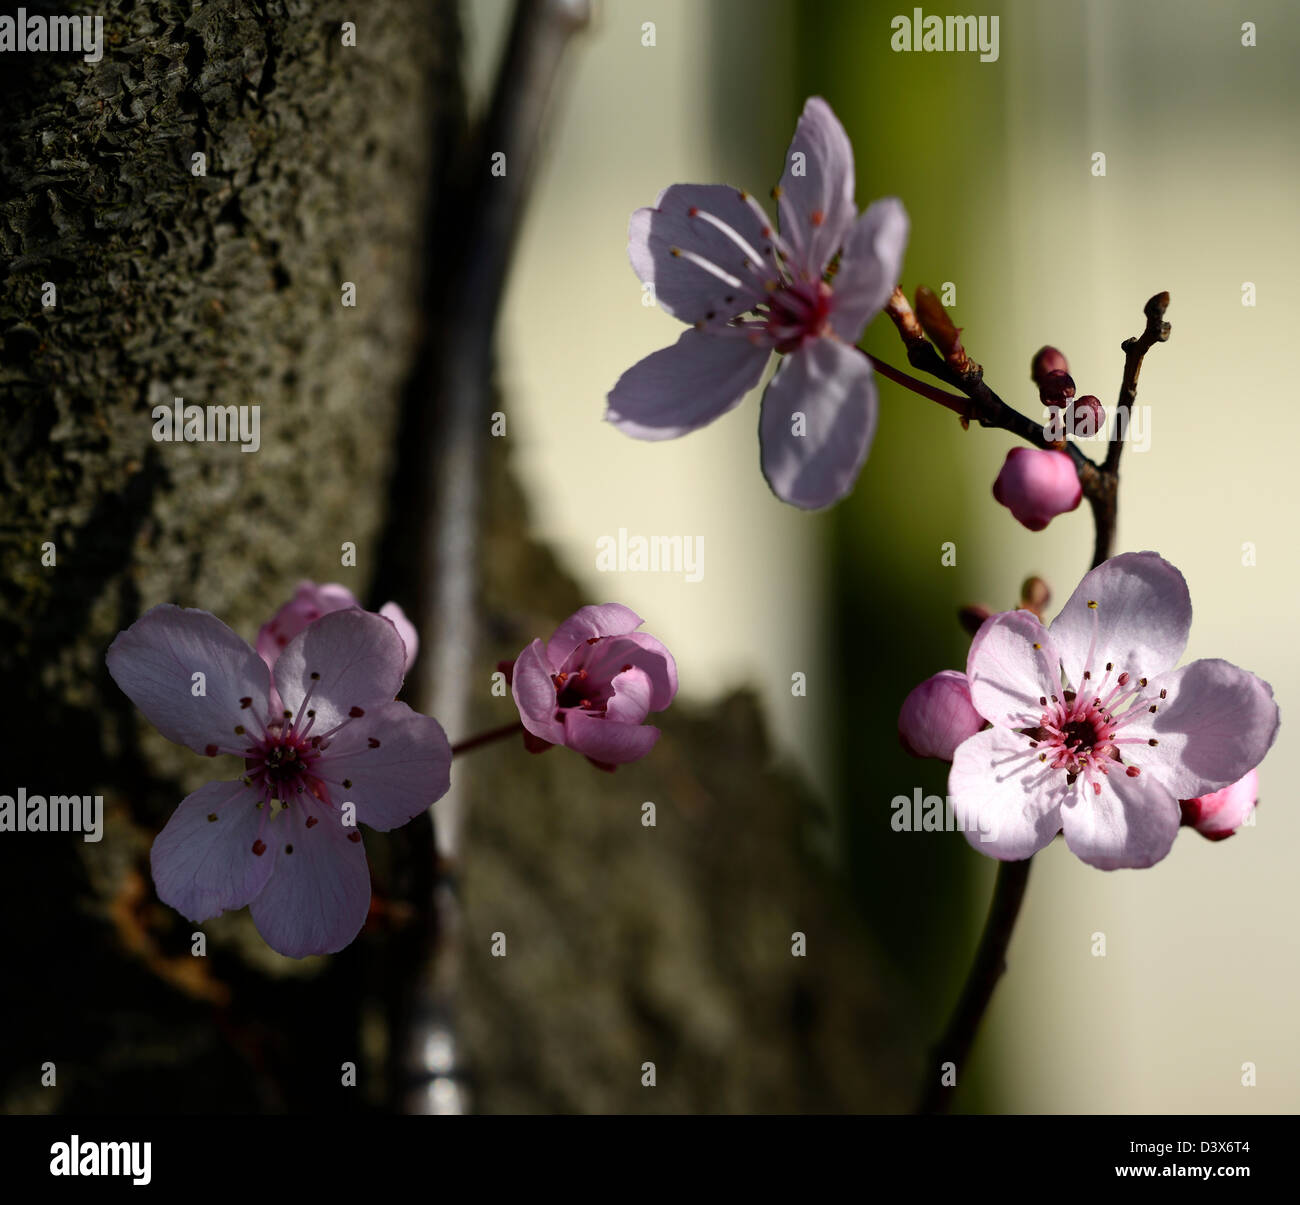 Prunus cerasifera pissardii roebuck castle Purpleleaf Plum cherry plum myrobalan plum tree blossom flower bloom - Stock Image